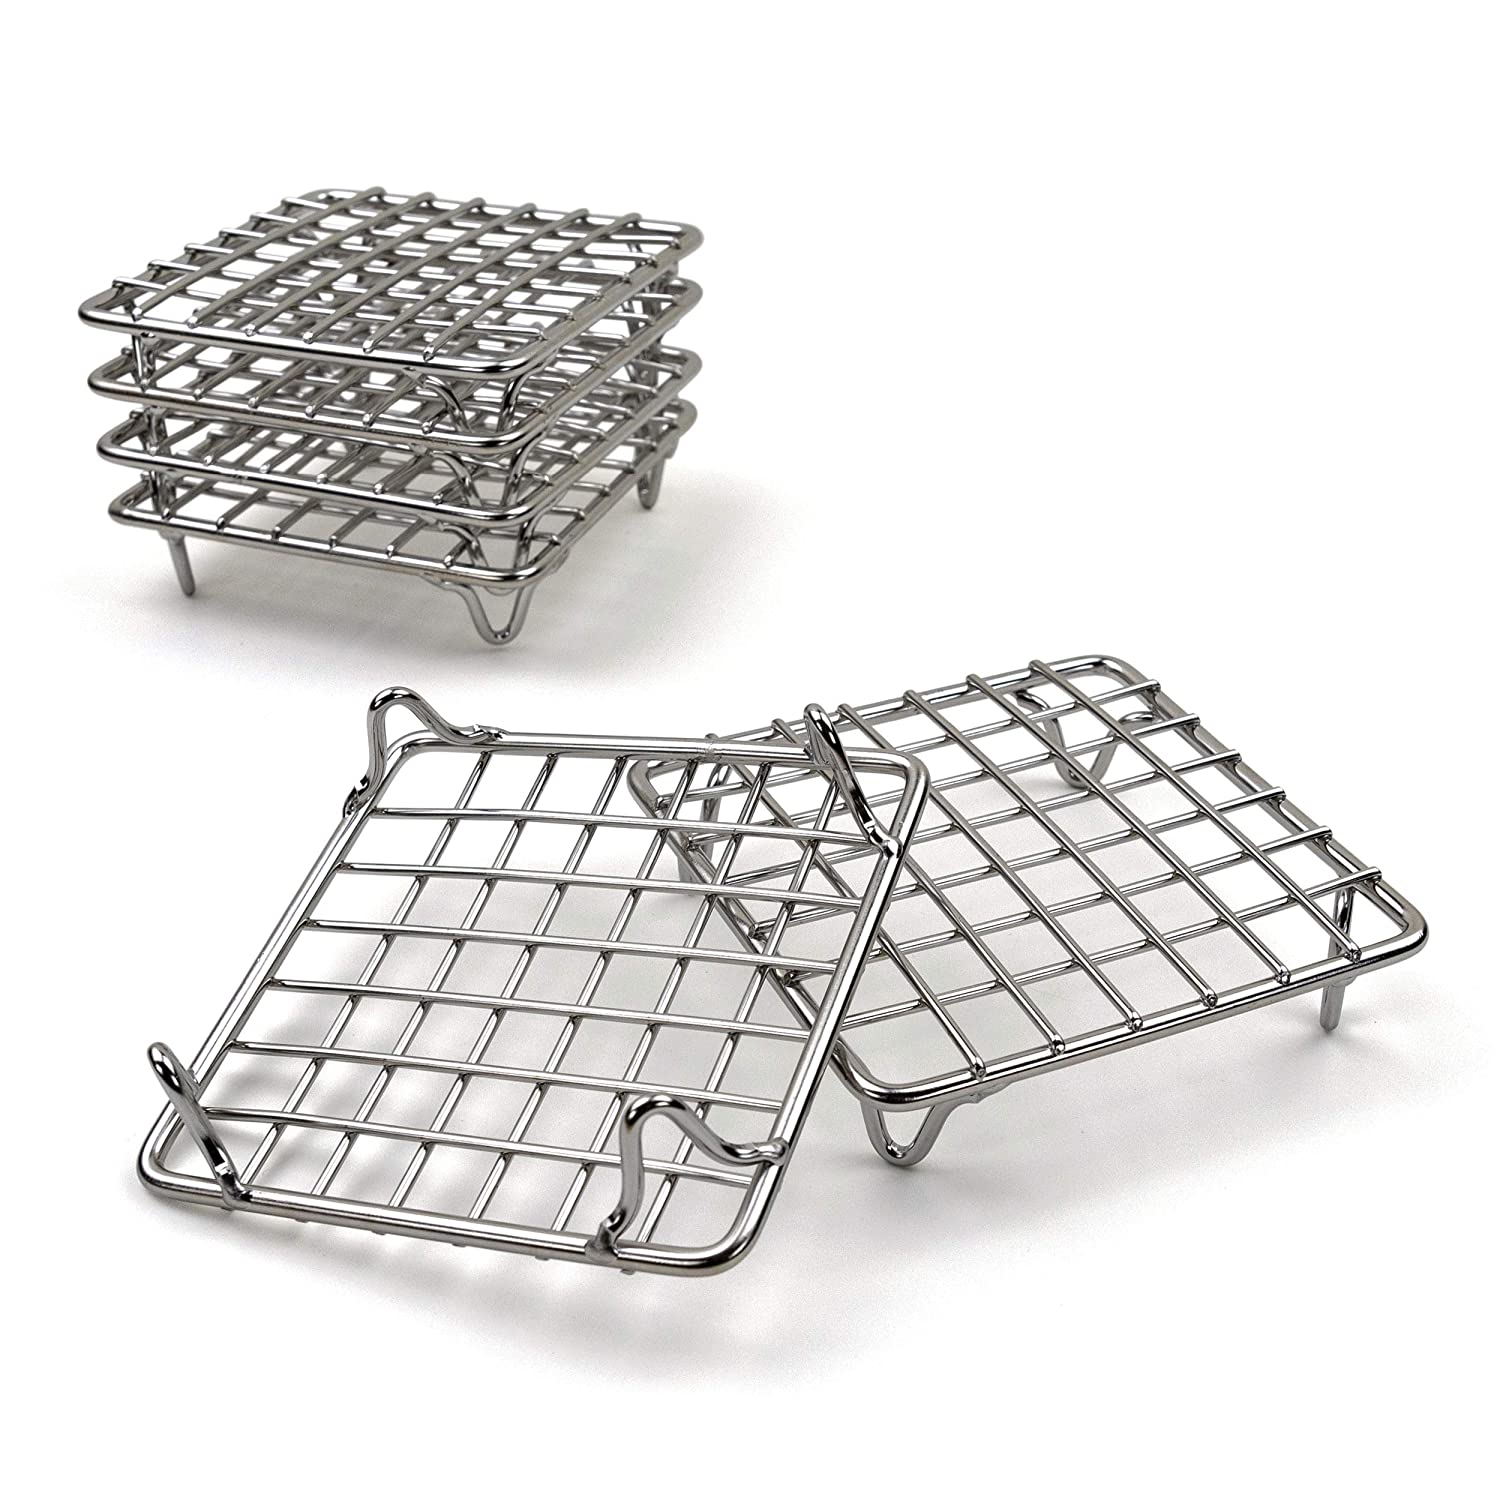 """2lbDepot 4"""" Cooling Baking Rack, Set of 6 Stainless Steel Wire Racks for Baking Cookies Cakes - Metal Trivet Stand for Cooking with Pots, Pans, Hot Dishes"""